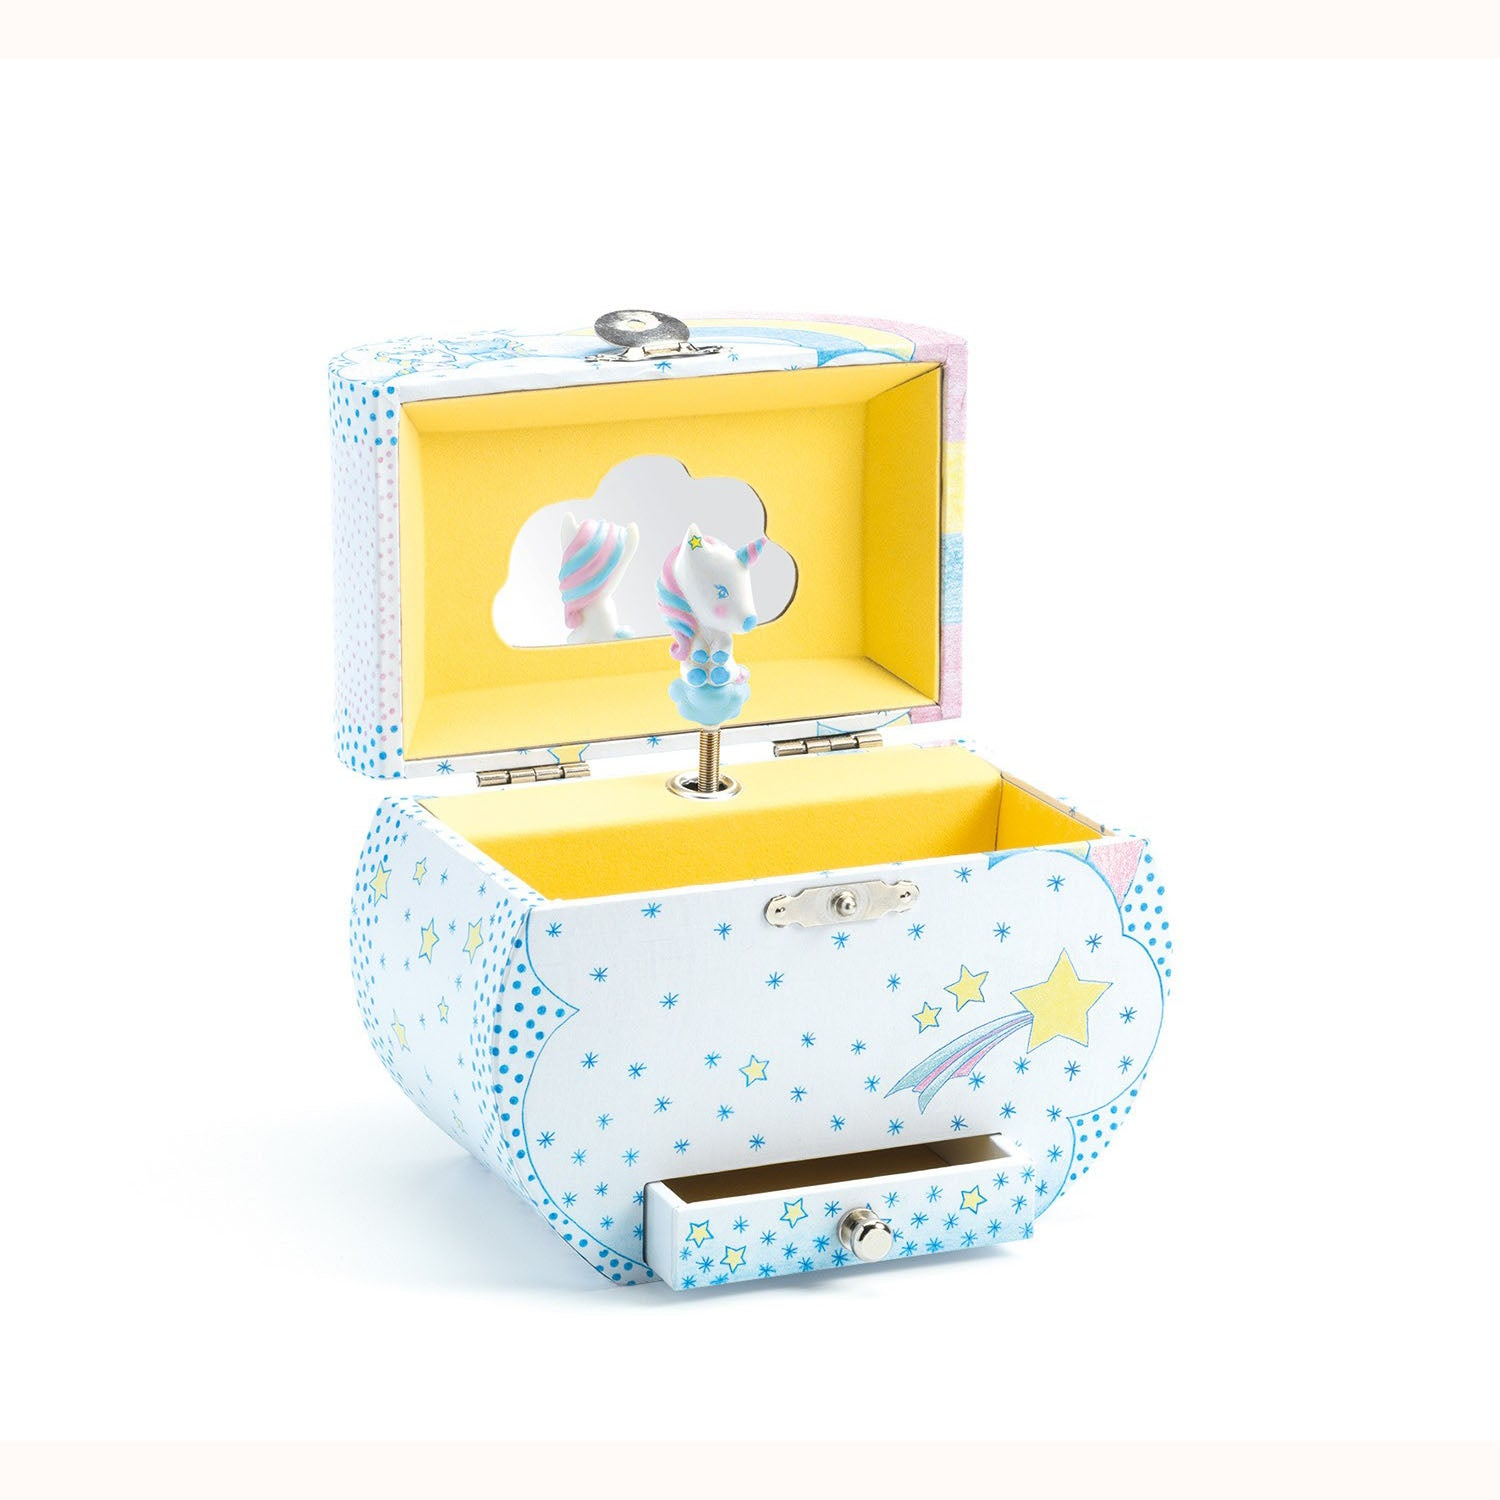 Unicorn's Dream Musical Trinket Box, open displaying figurine